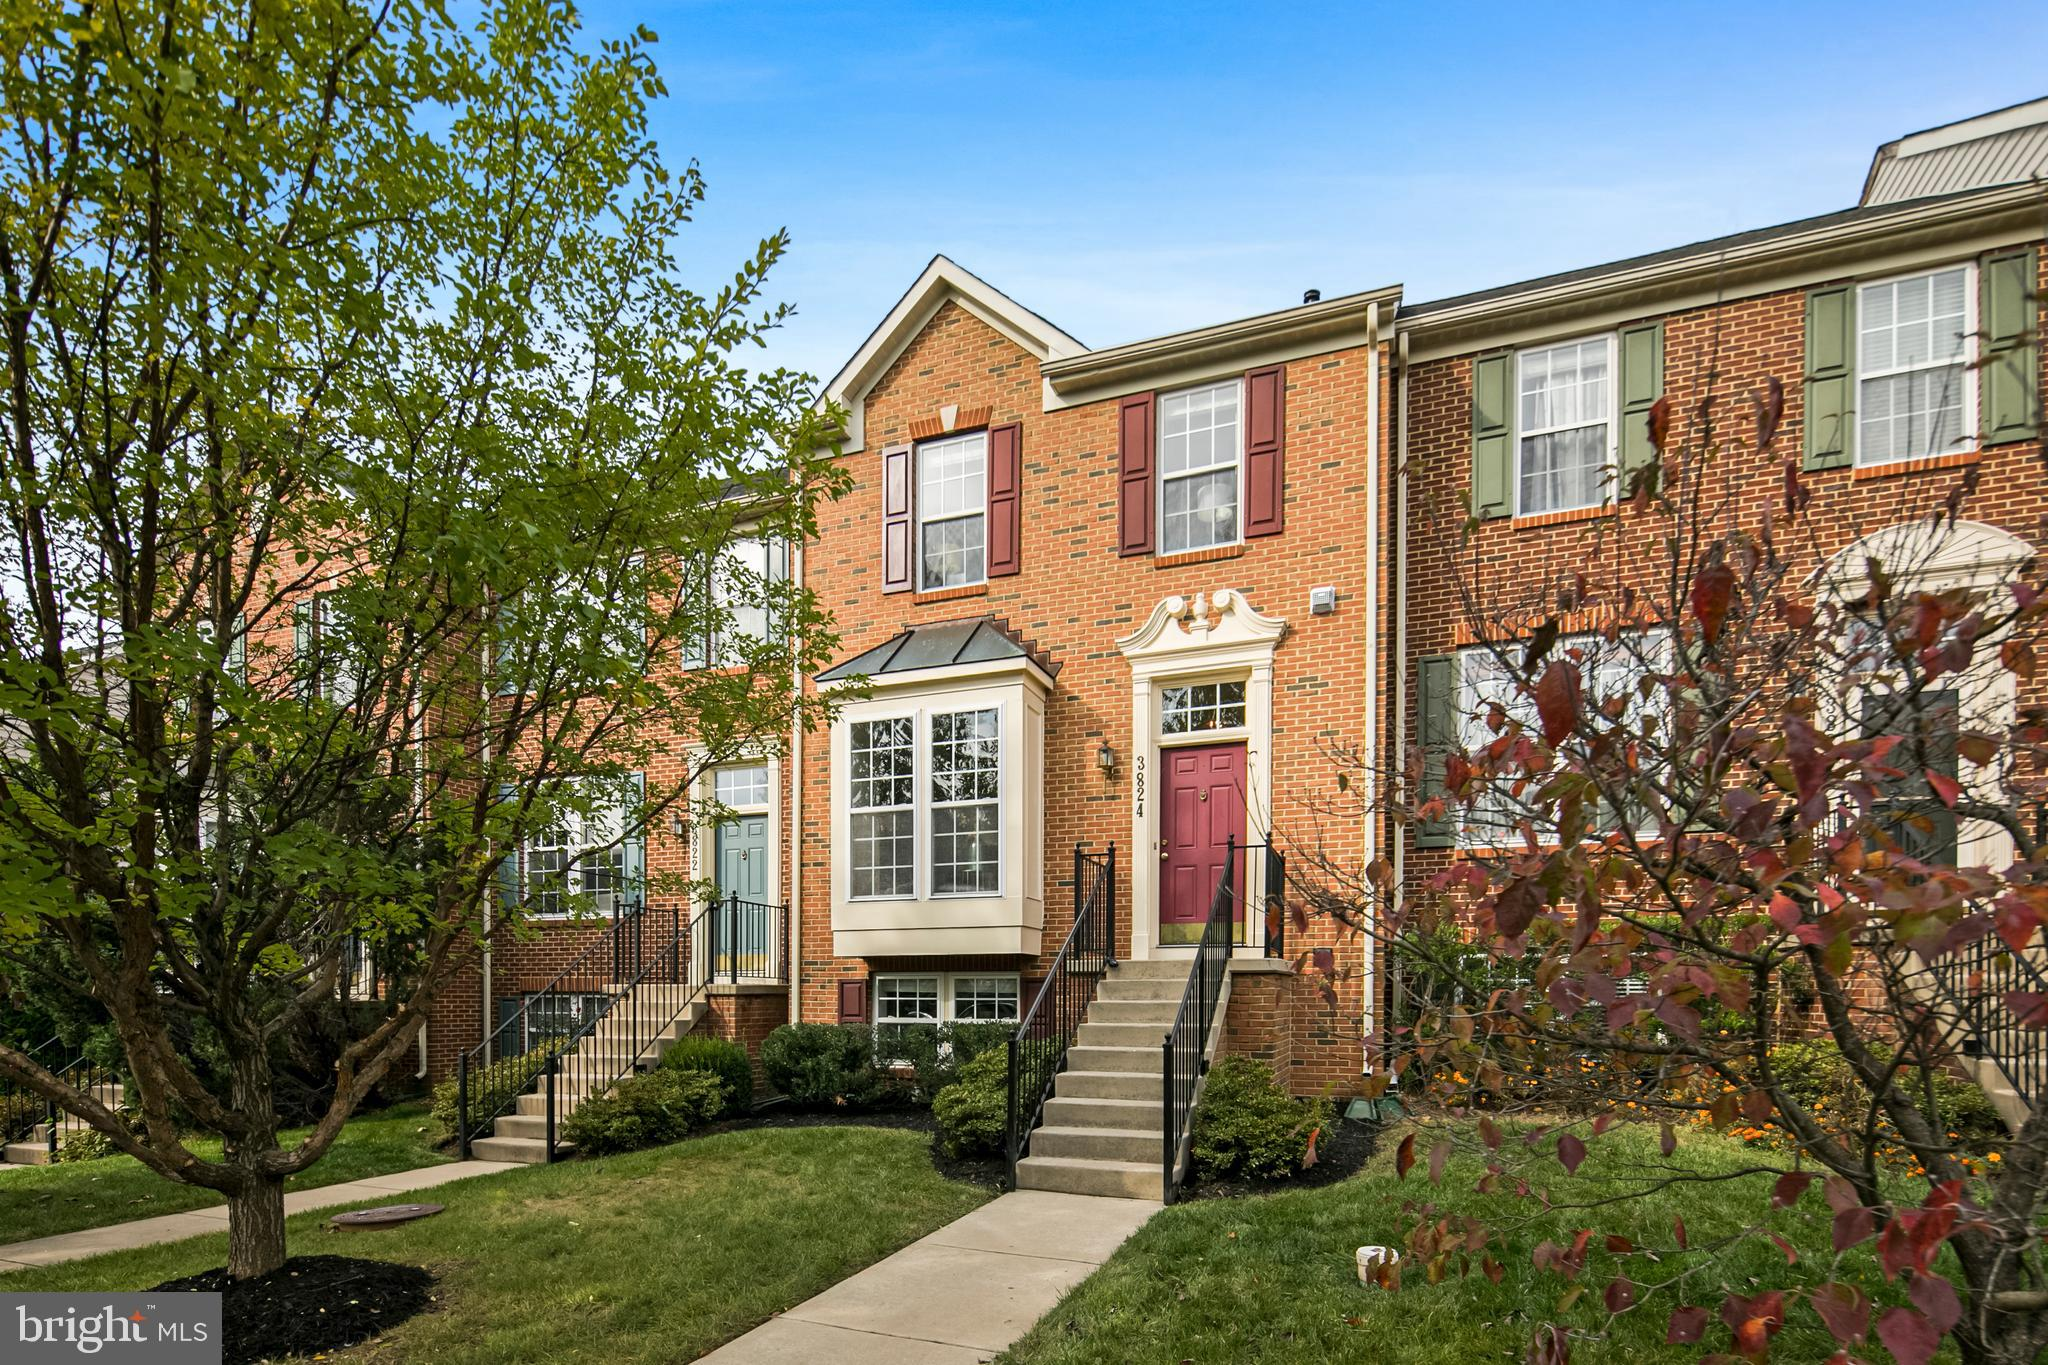 OPEN HOUSE Saturday 10/31 12:00 – 2:00 pm. As you walk into this beautiful brick townhouse you will